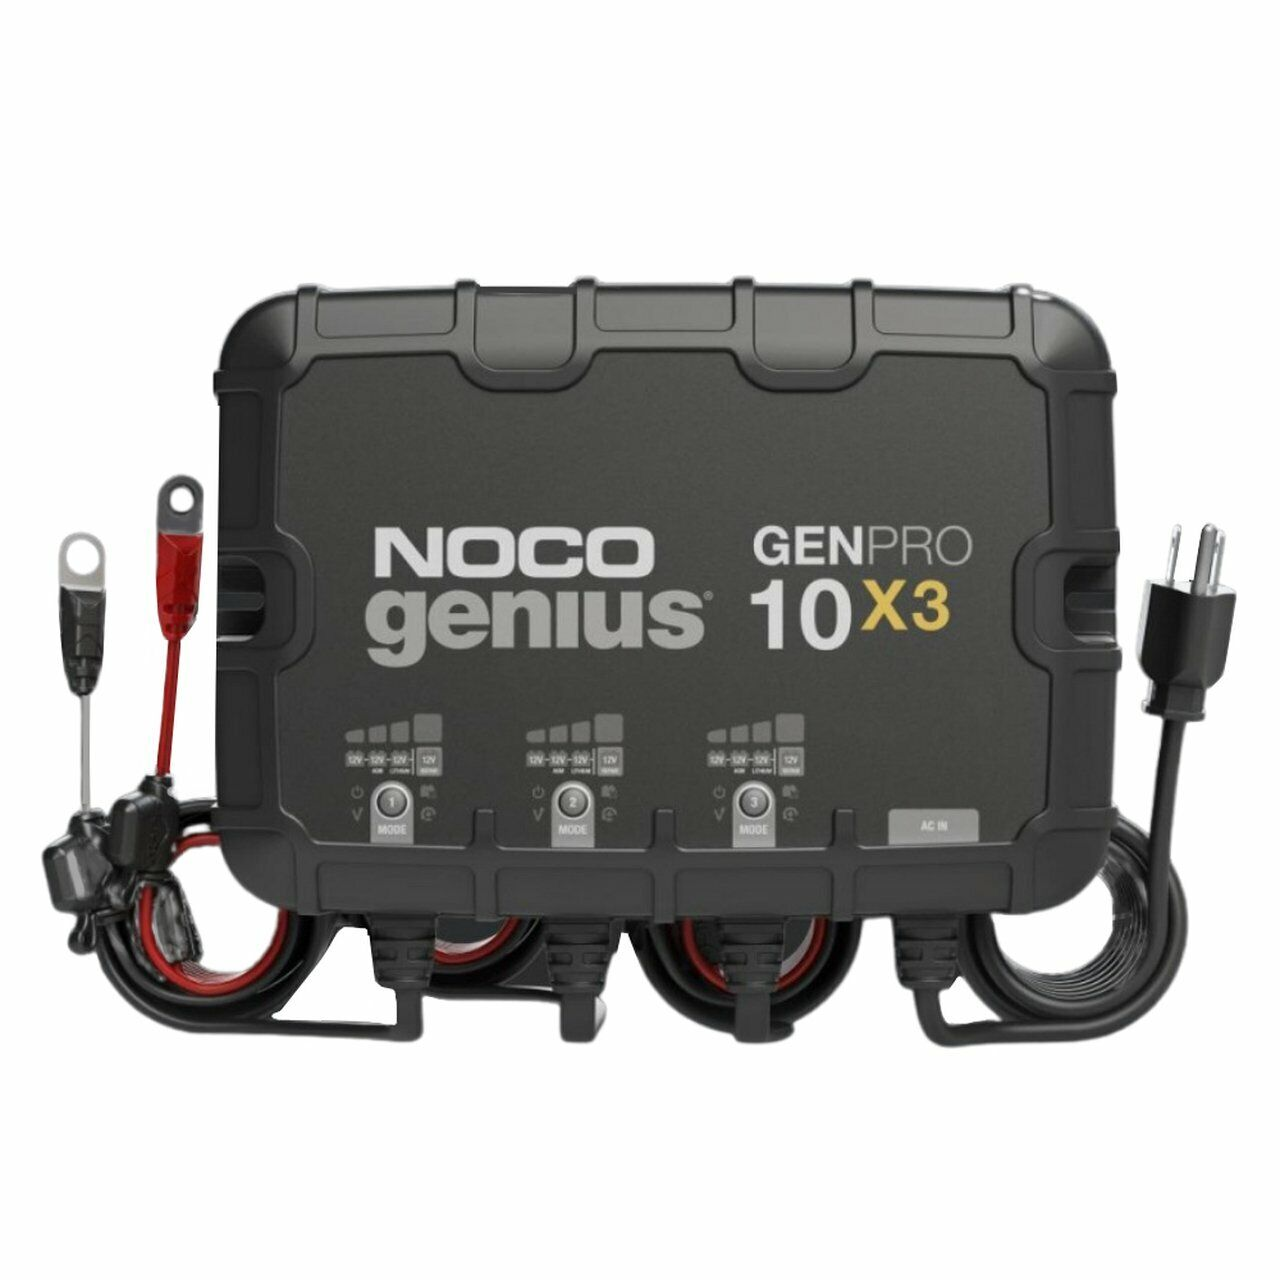 Noco 12V On-Board Battery Charger GenPro 10X3